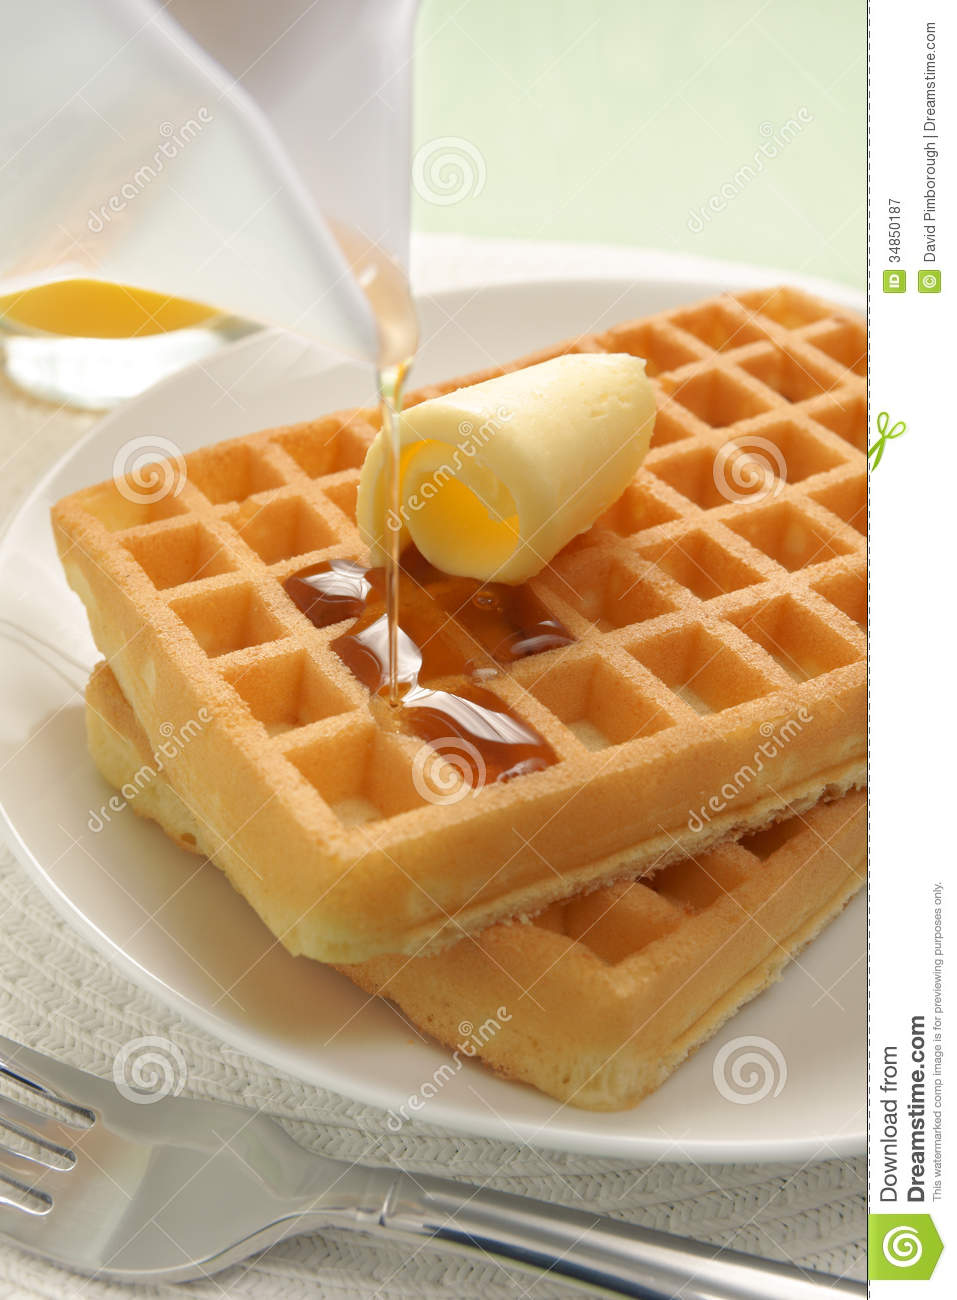 Waffles And Maple Syrup Royalty Free Stock Photography